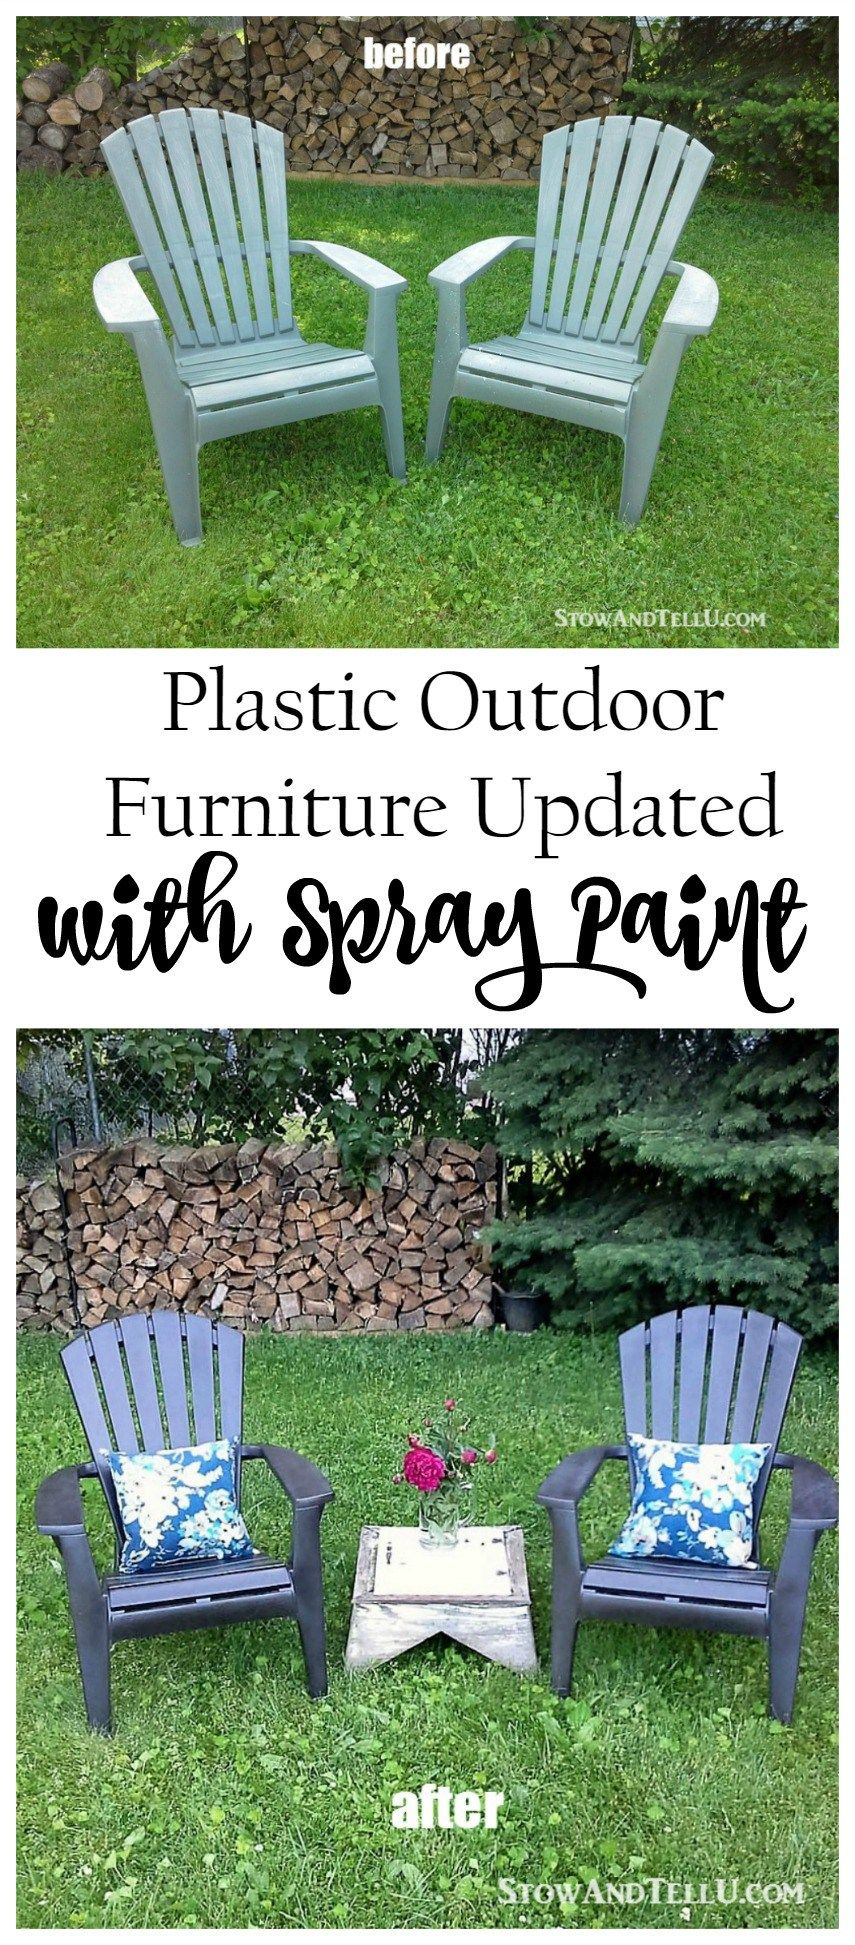 yardworkation #1 - spray paint and plastic lawn chairs | diy